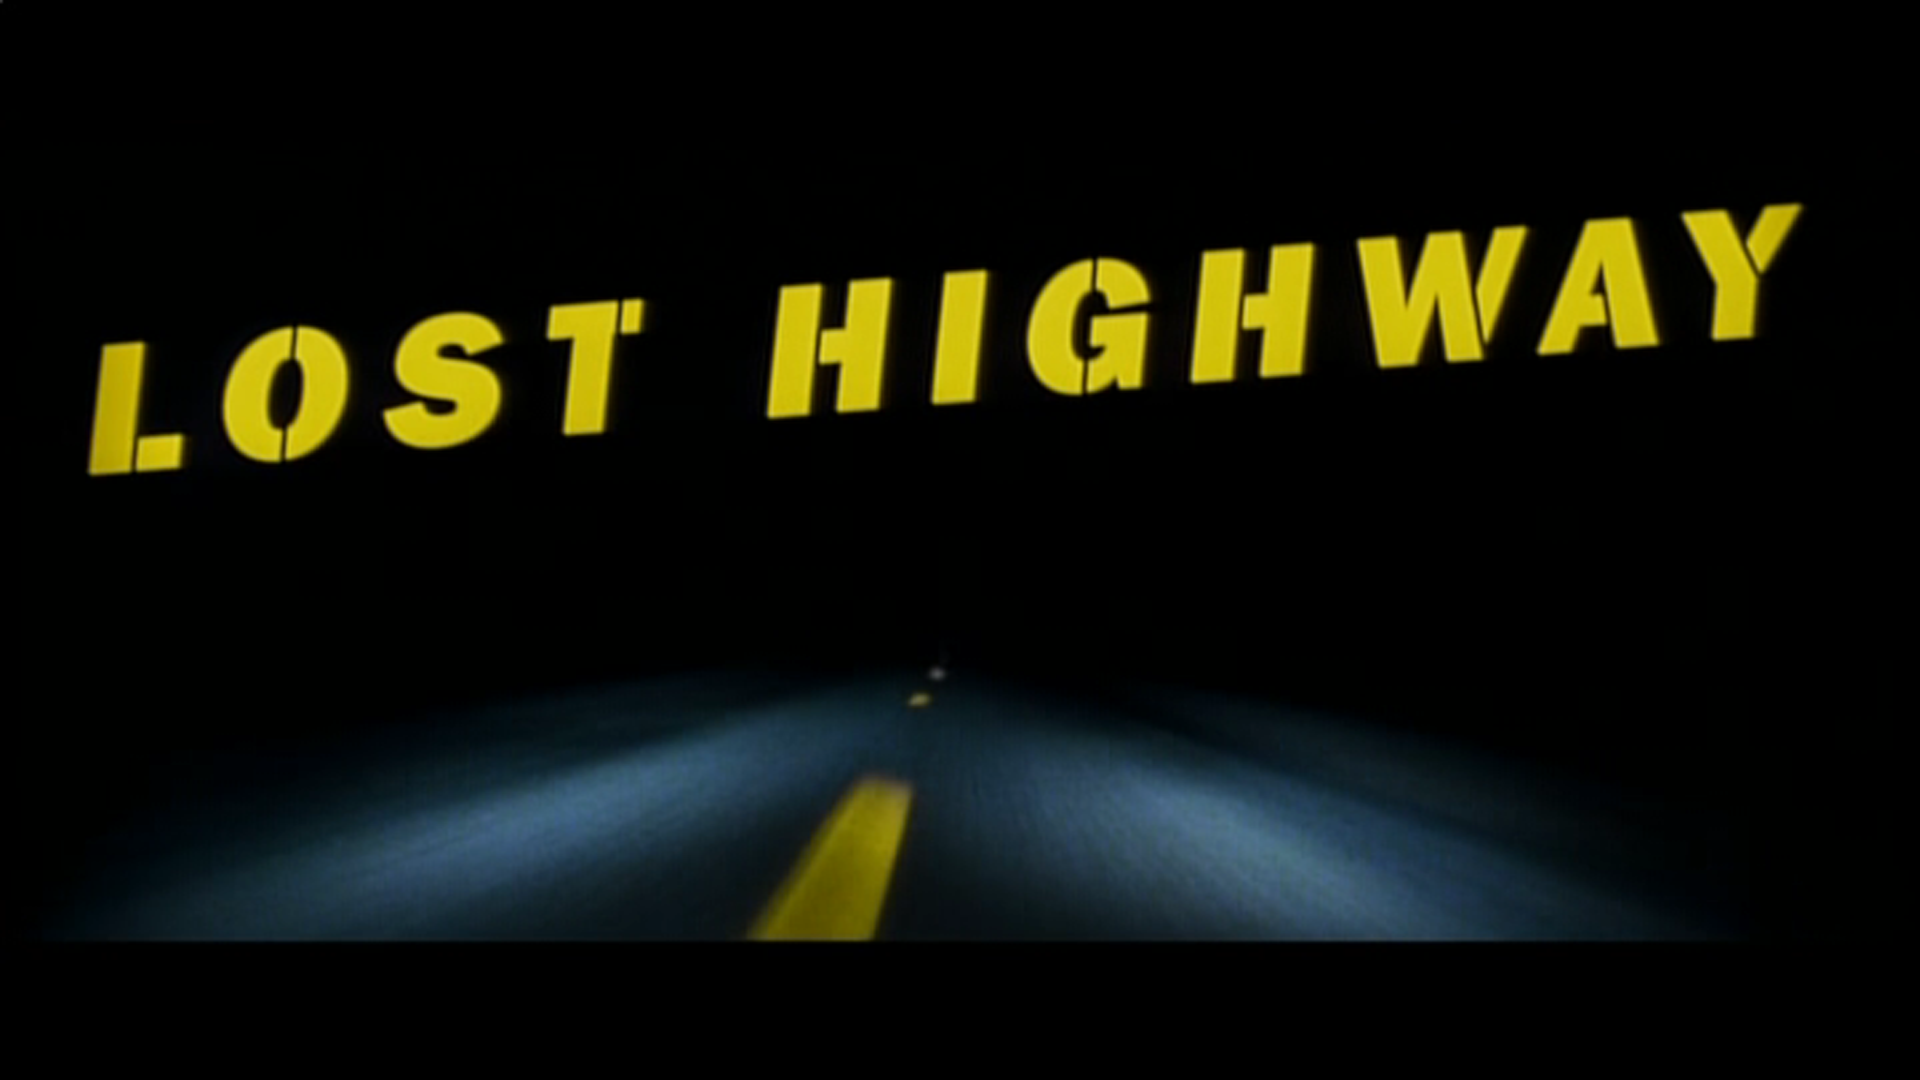 Lost Highway Pictures 40